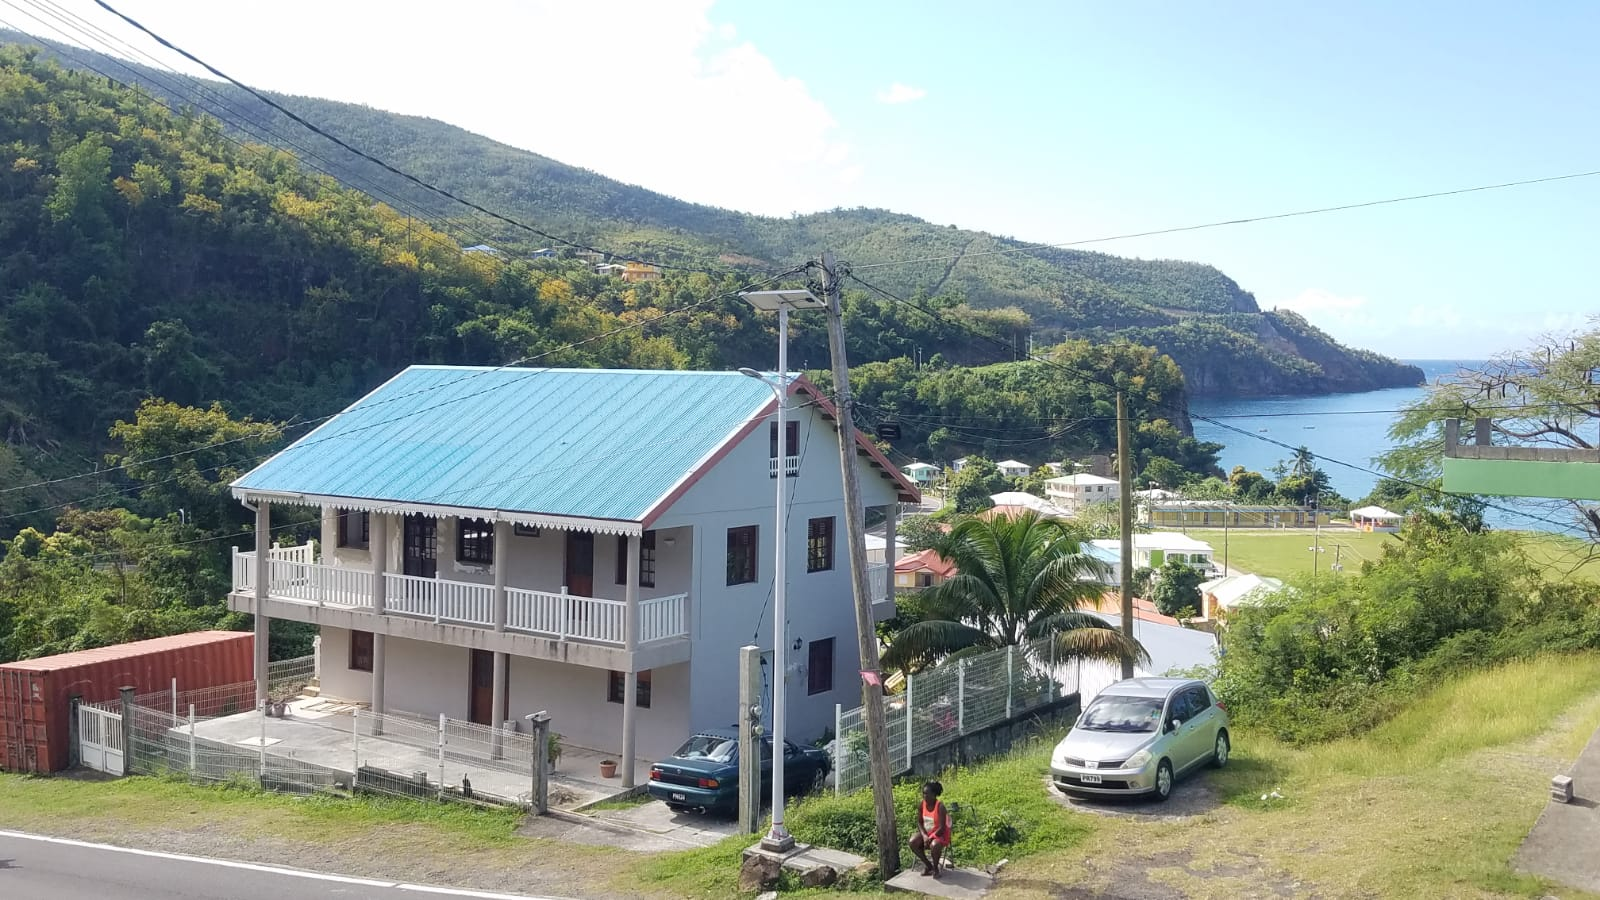 3 Bedroom Apartment For Rent In Dublanc